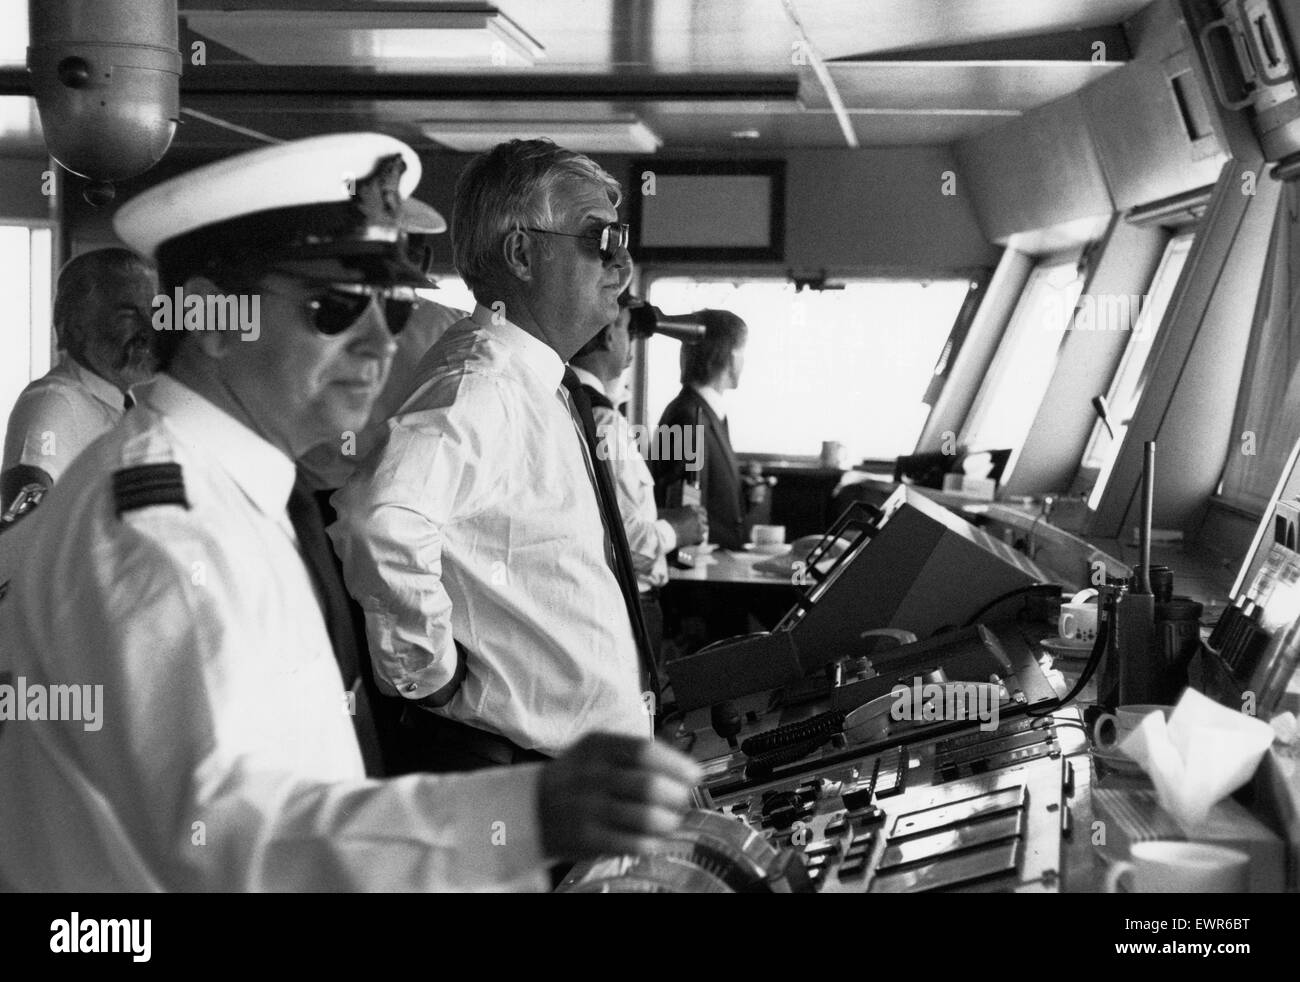 Captain Robin Woodall, Master of the QE2, on the bridge of the ship as it is sailed into Liverpool as part of Cunard's - Stock Image